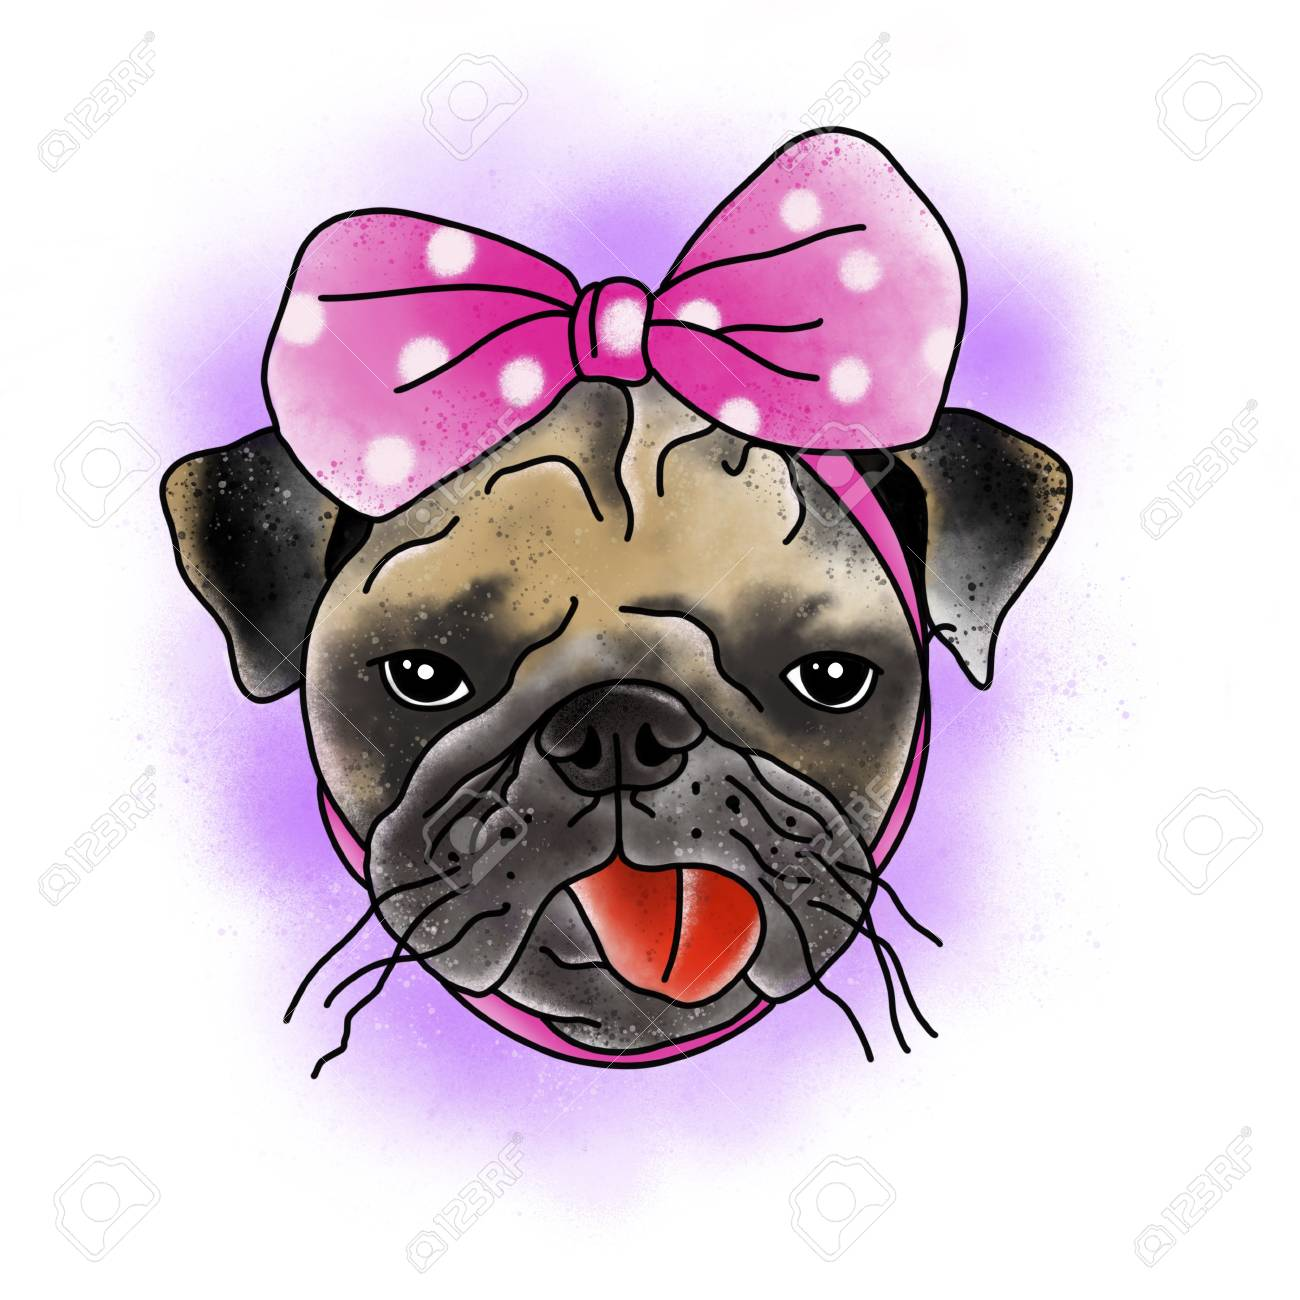 Stylized dog. Tattoo design. Cartoon illustration, hand drawn style. Banque d'images - 87645419